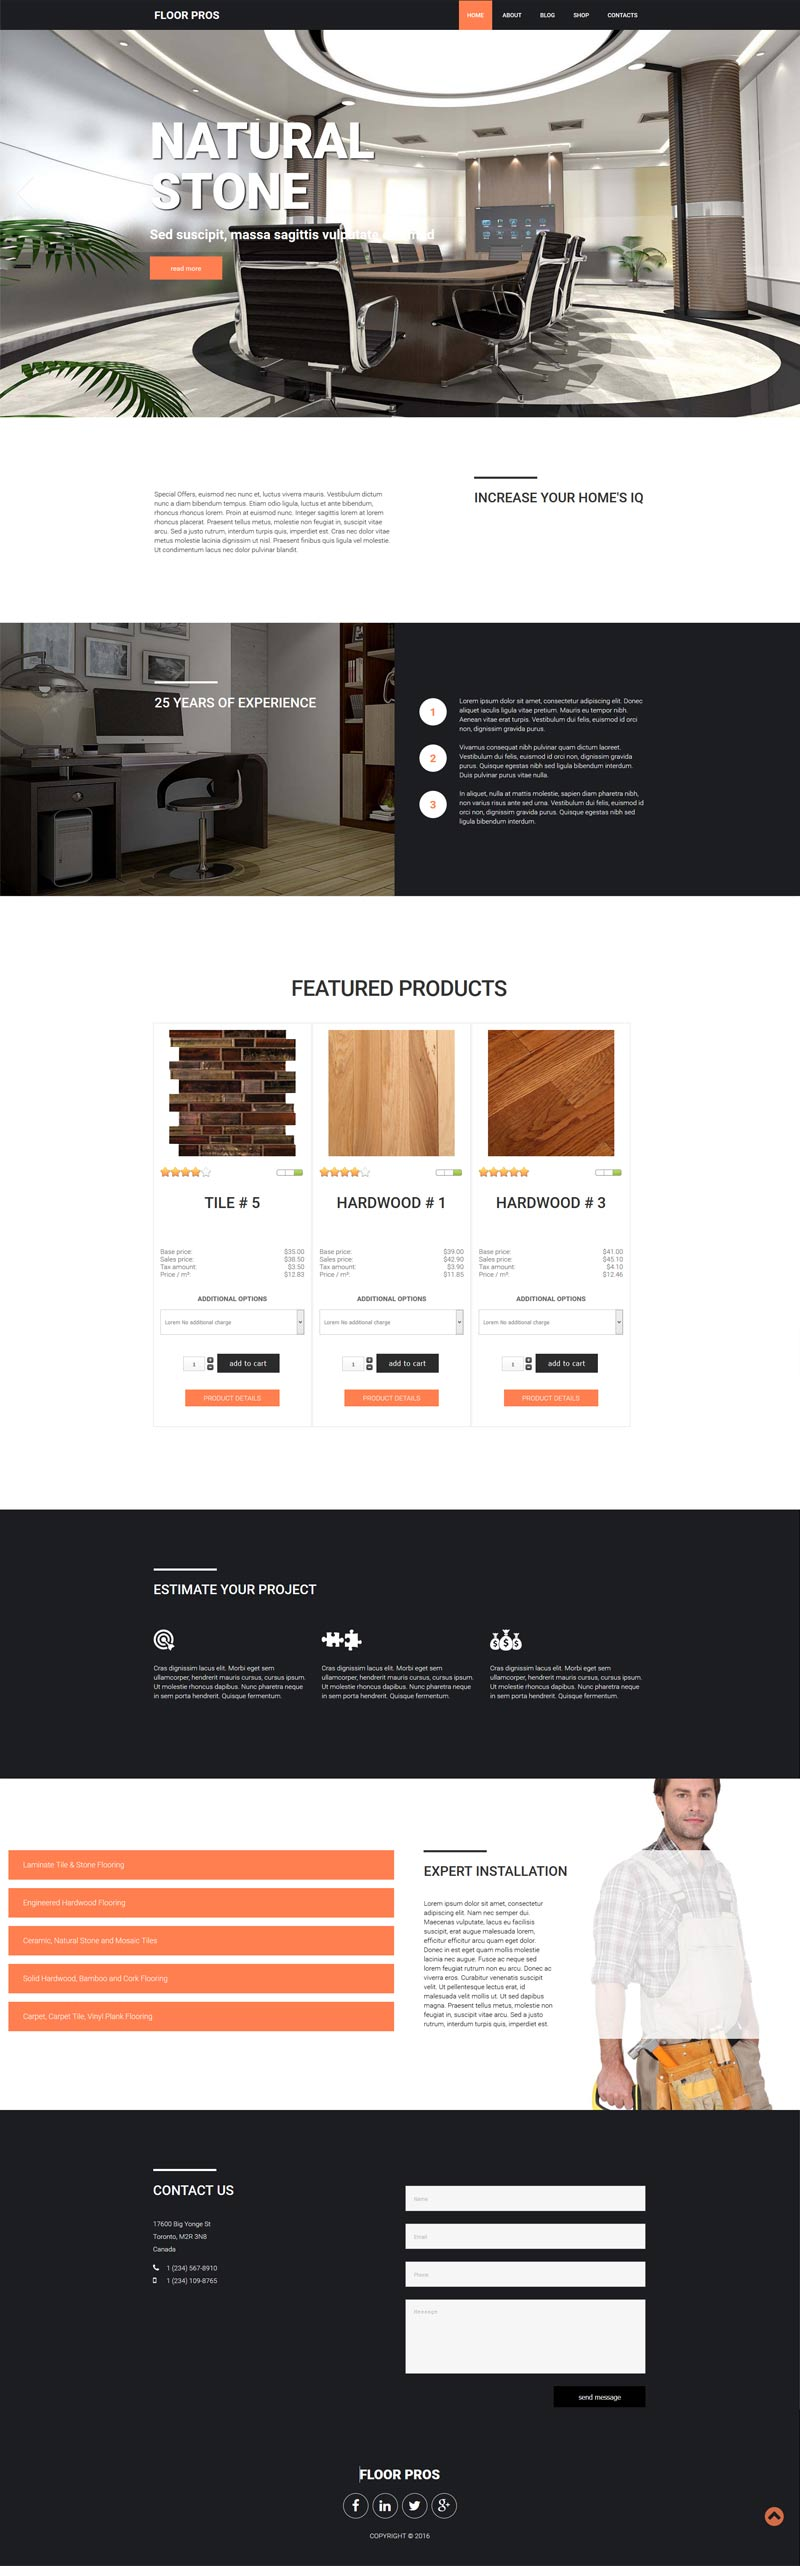 Flooring Joomla VirtueMart Template